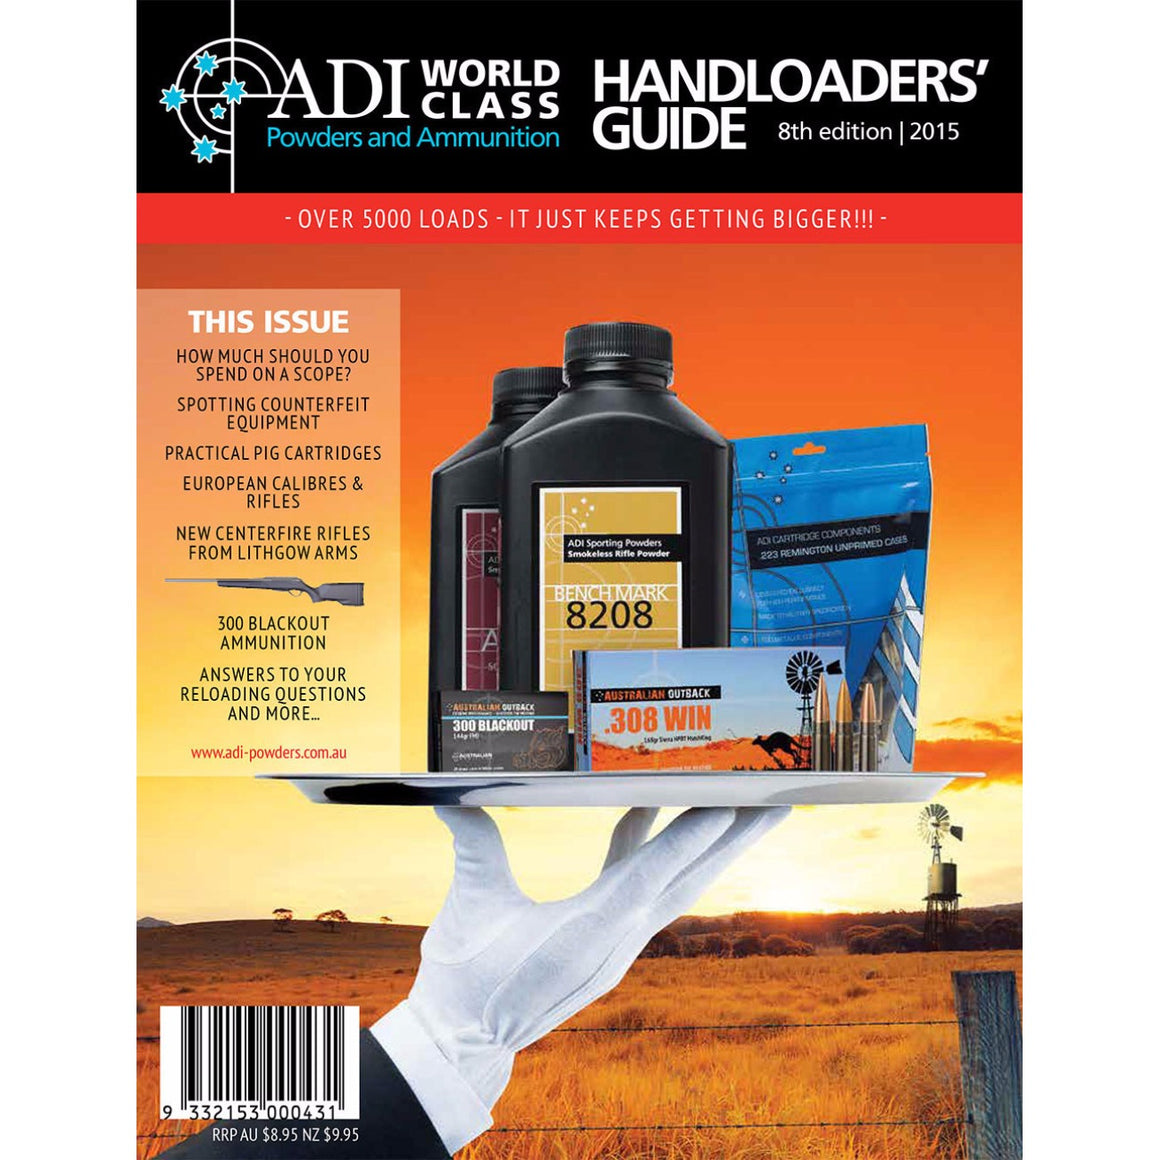 ADI Handloaders Guide 9th edition